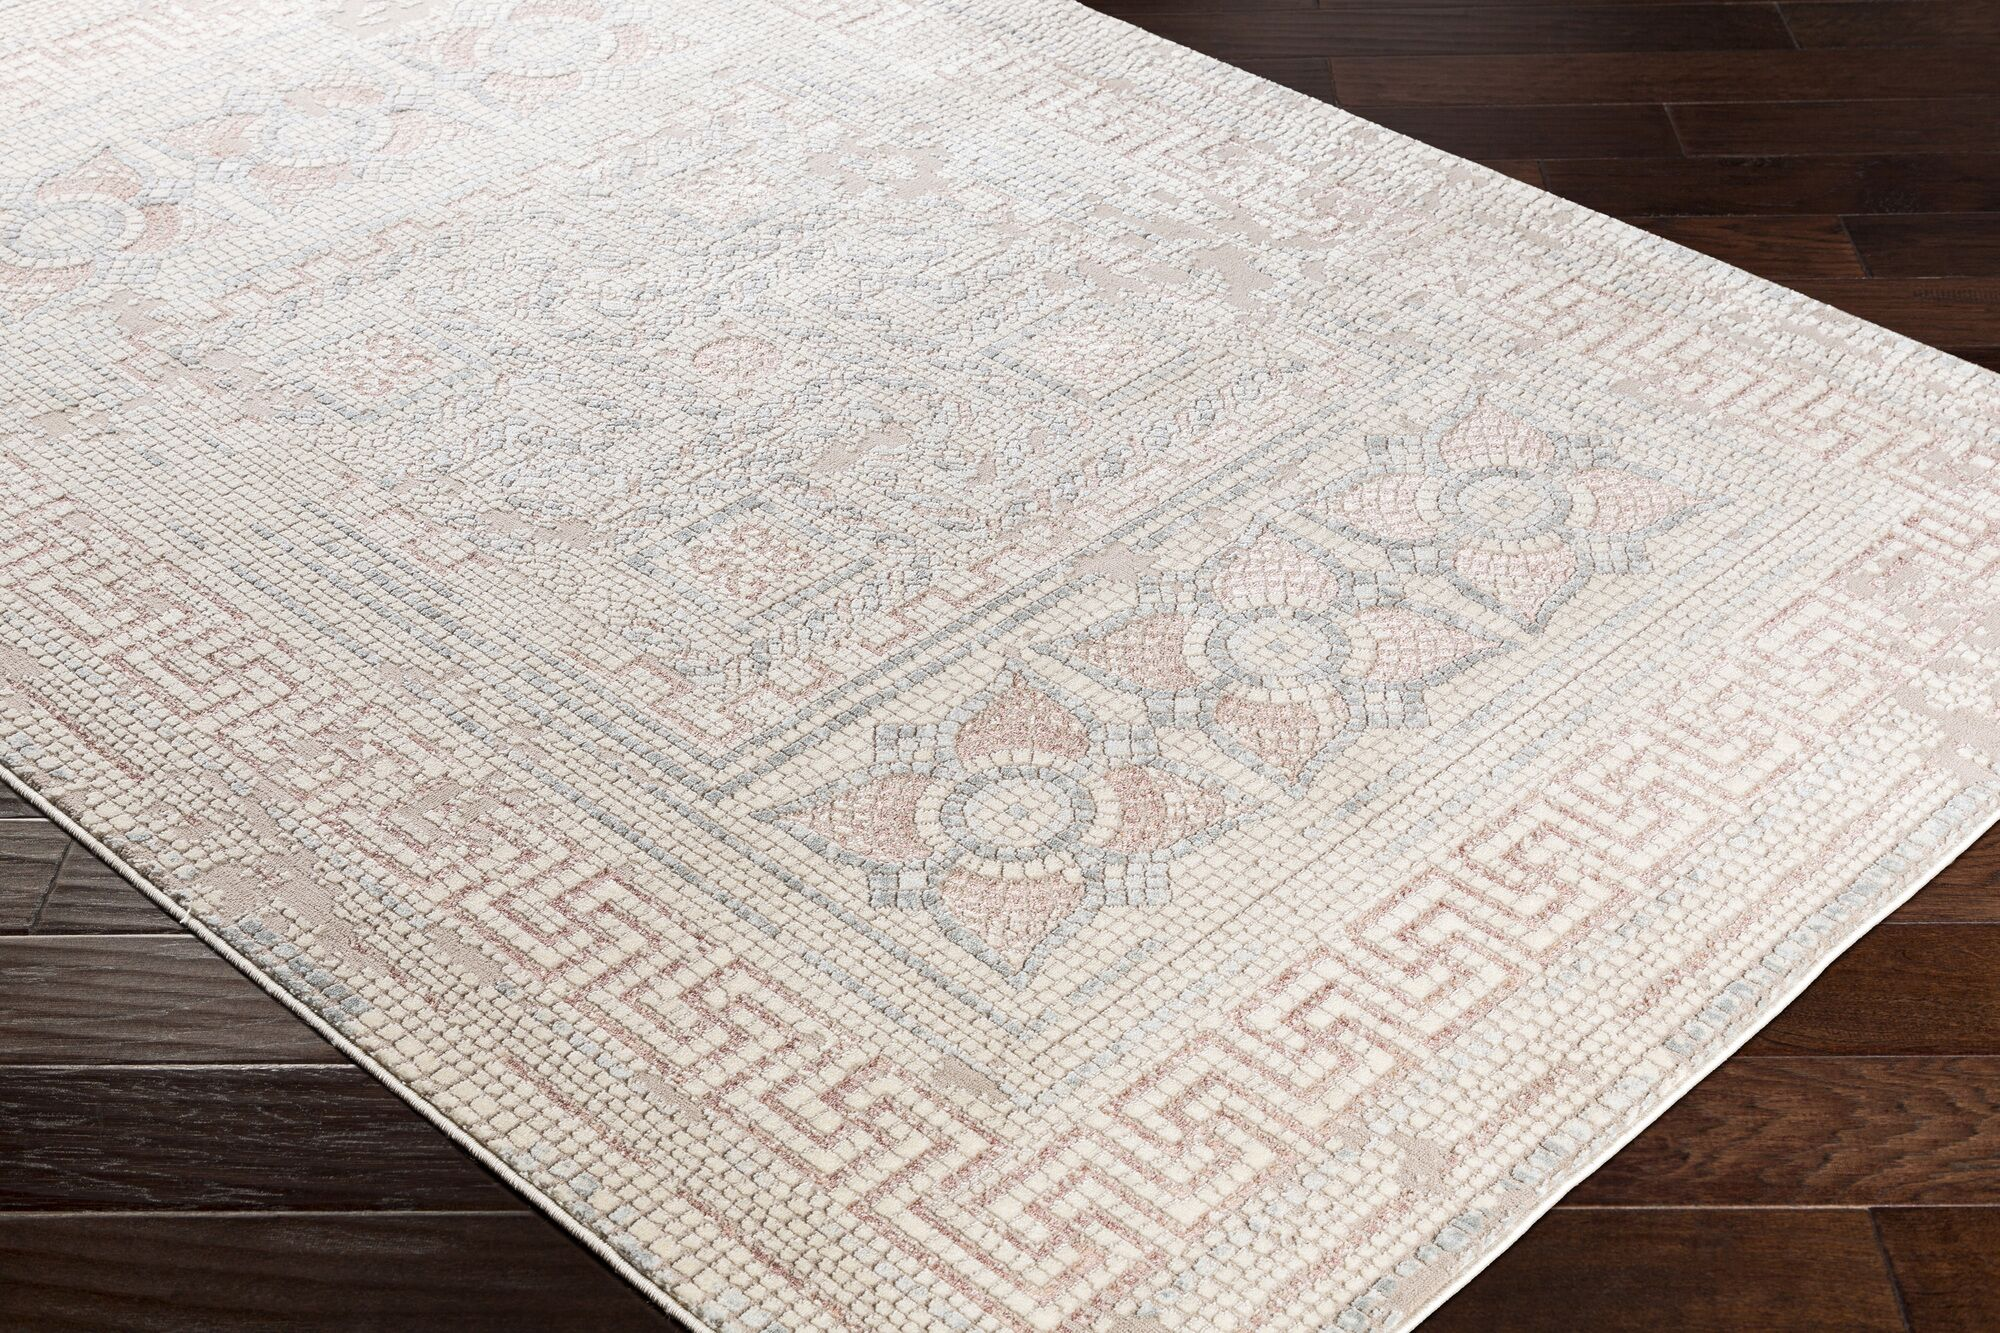 Nakasi Distressed Camel/Beige Area Rug Rug Size: Rectangle 6'7